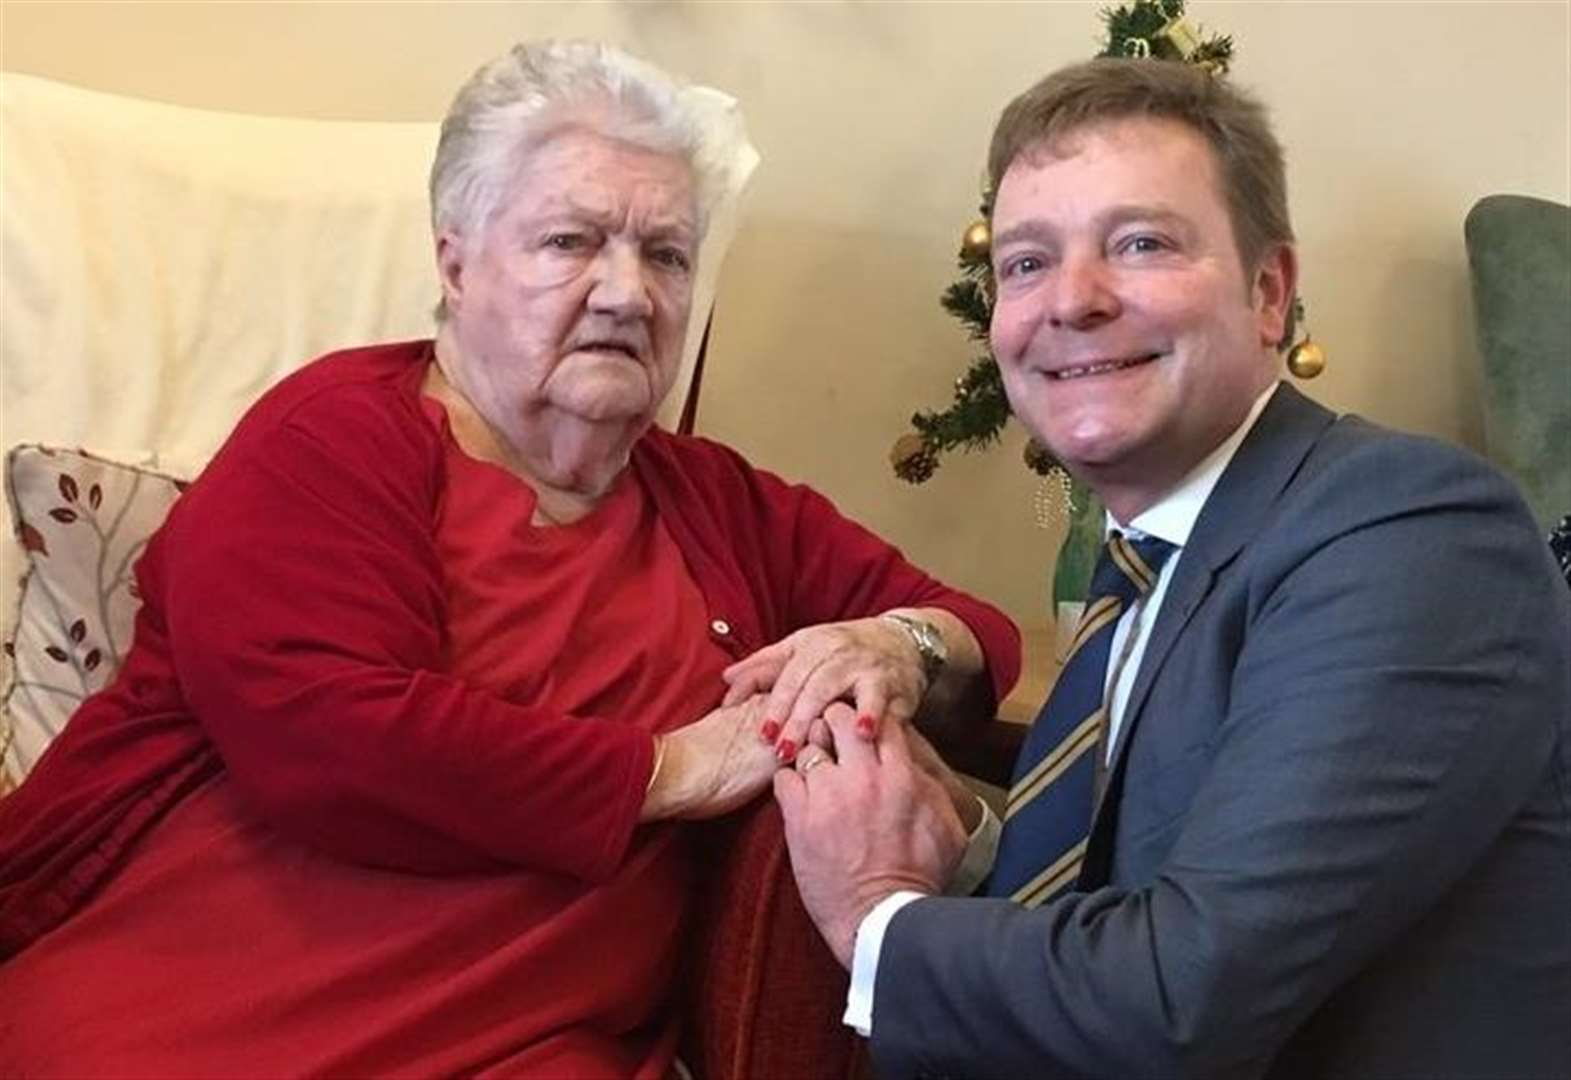 MP's festive visit to ex-service people